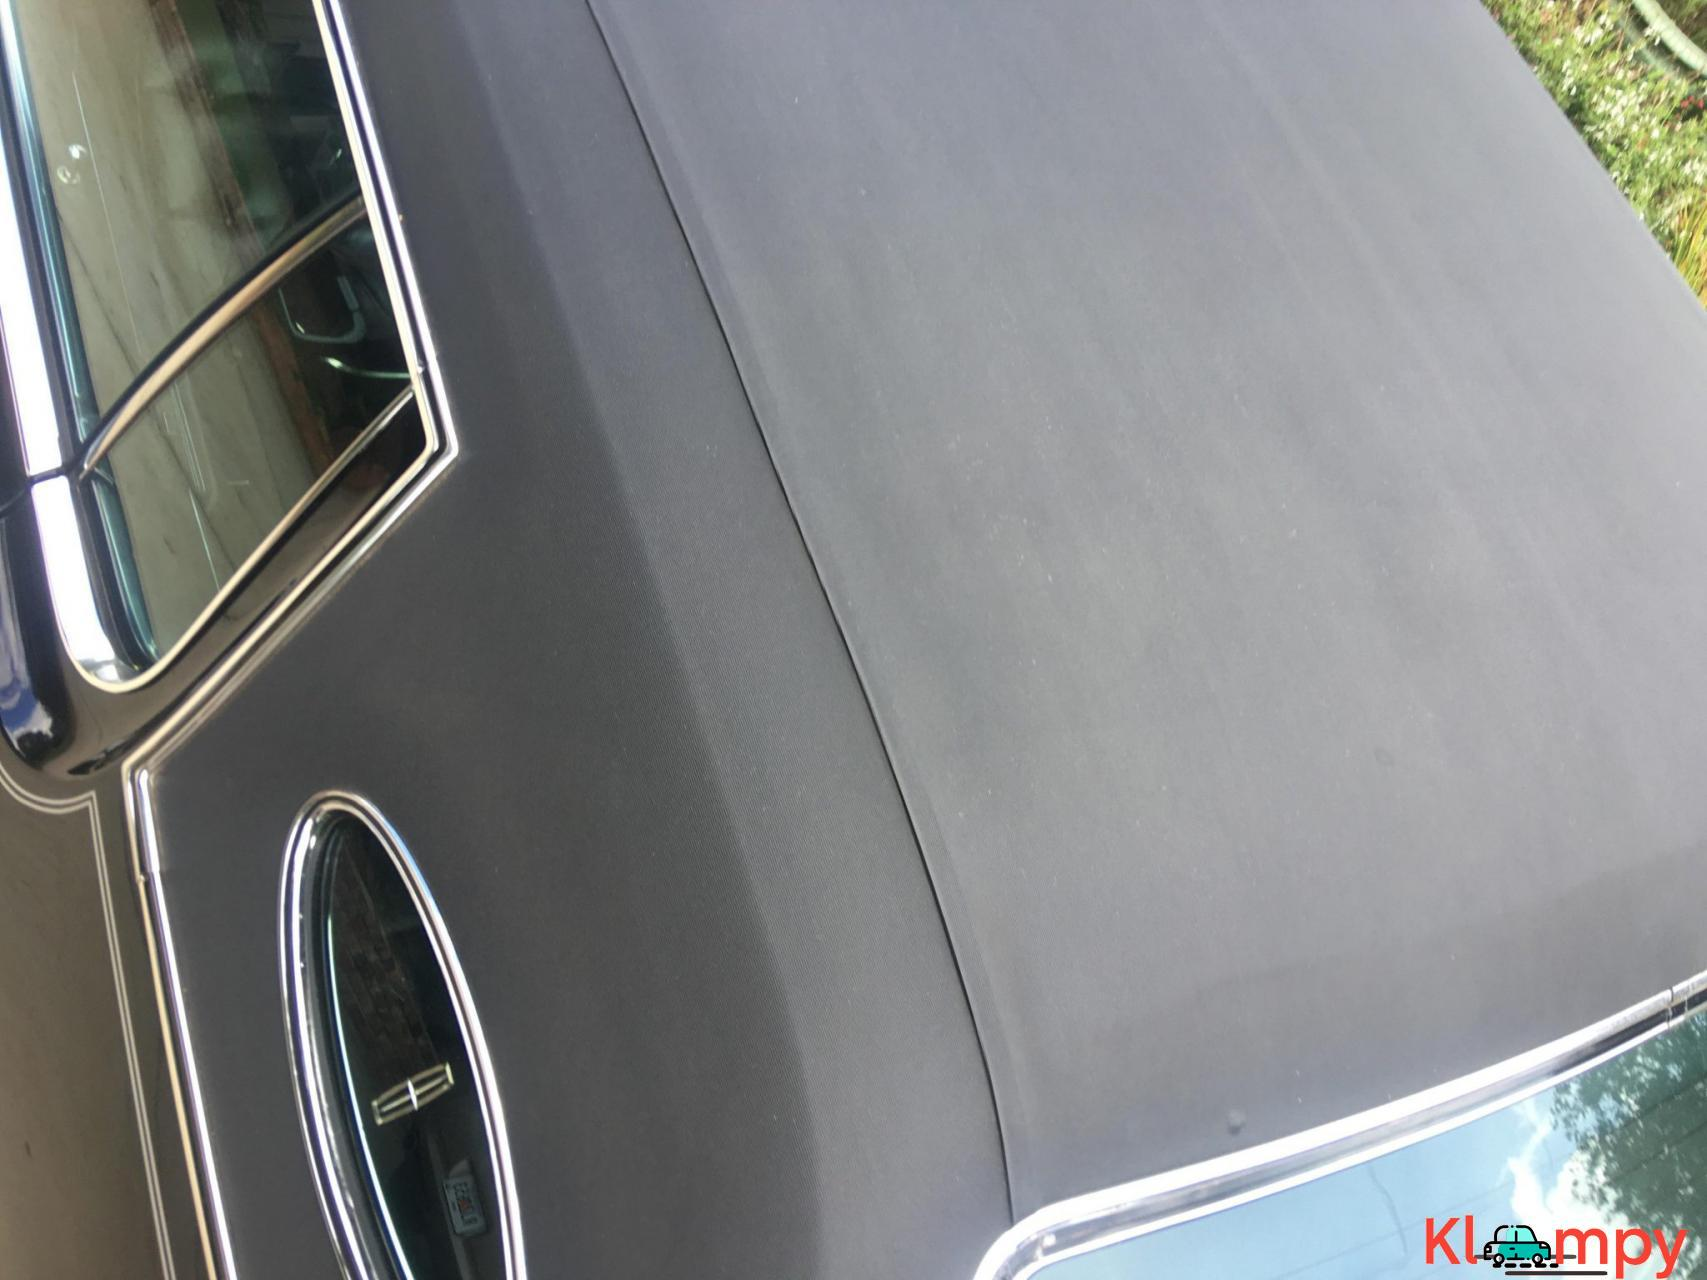 1974 Lincoln Continental Mark IV Coupe V8 - 19/20